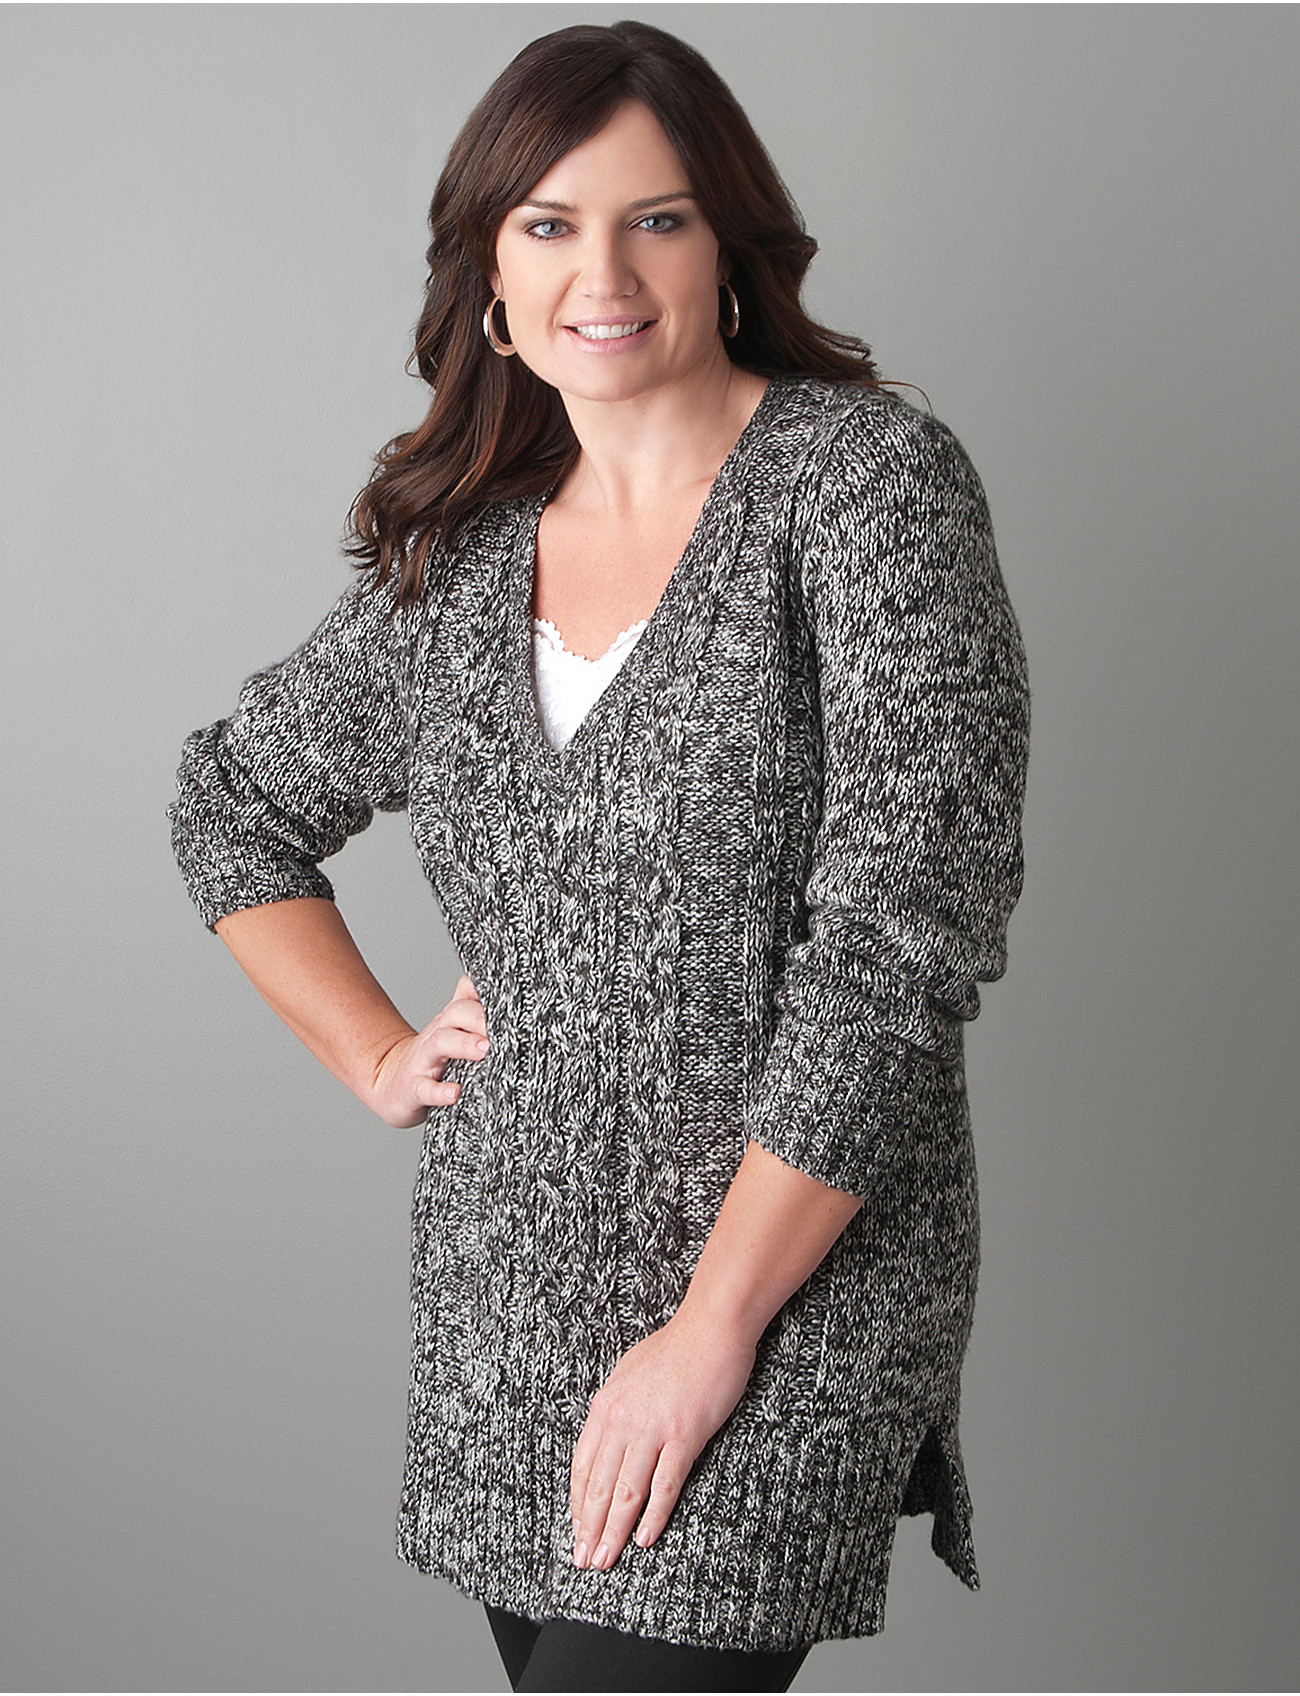 Full Figure Cable knit sweater tunic | Lane Bryant